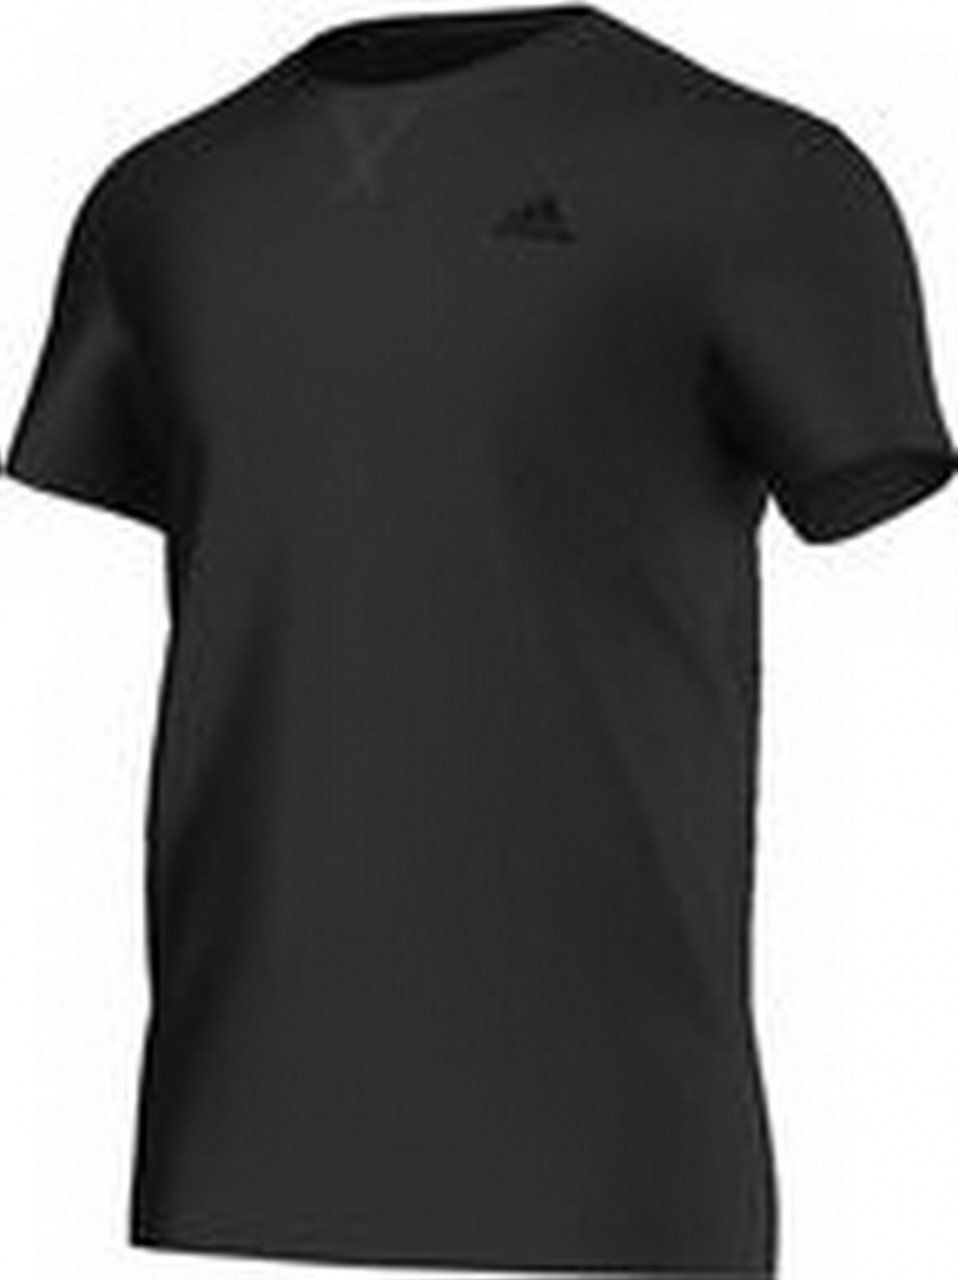 adidas - Shirts - Sport Essentials Tee - Black - XS